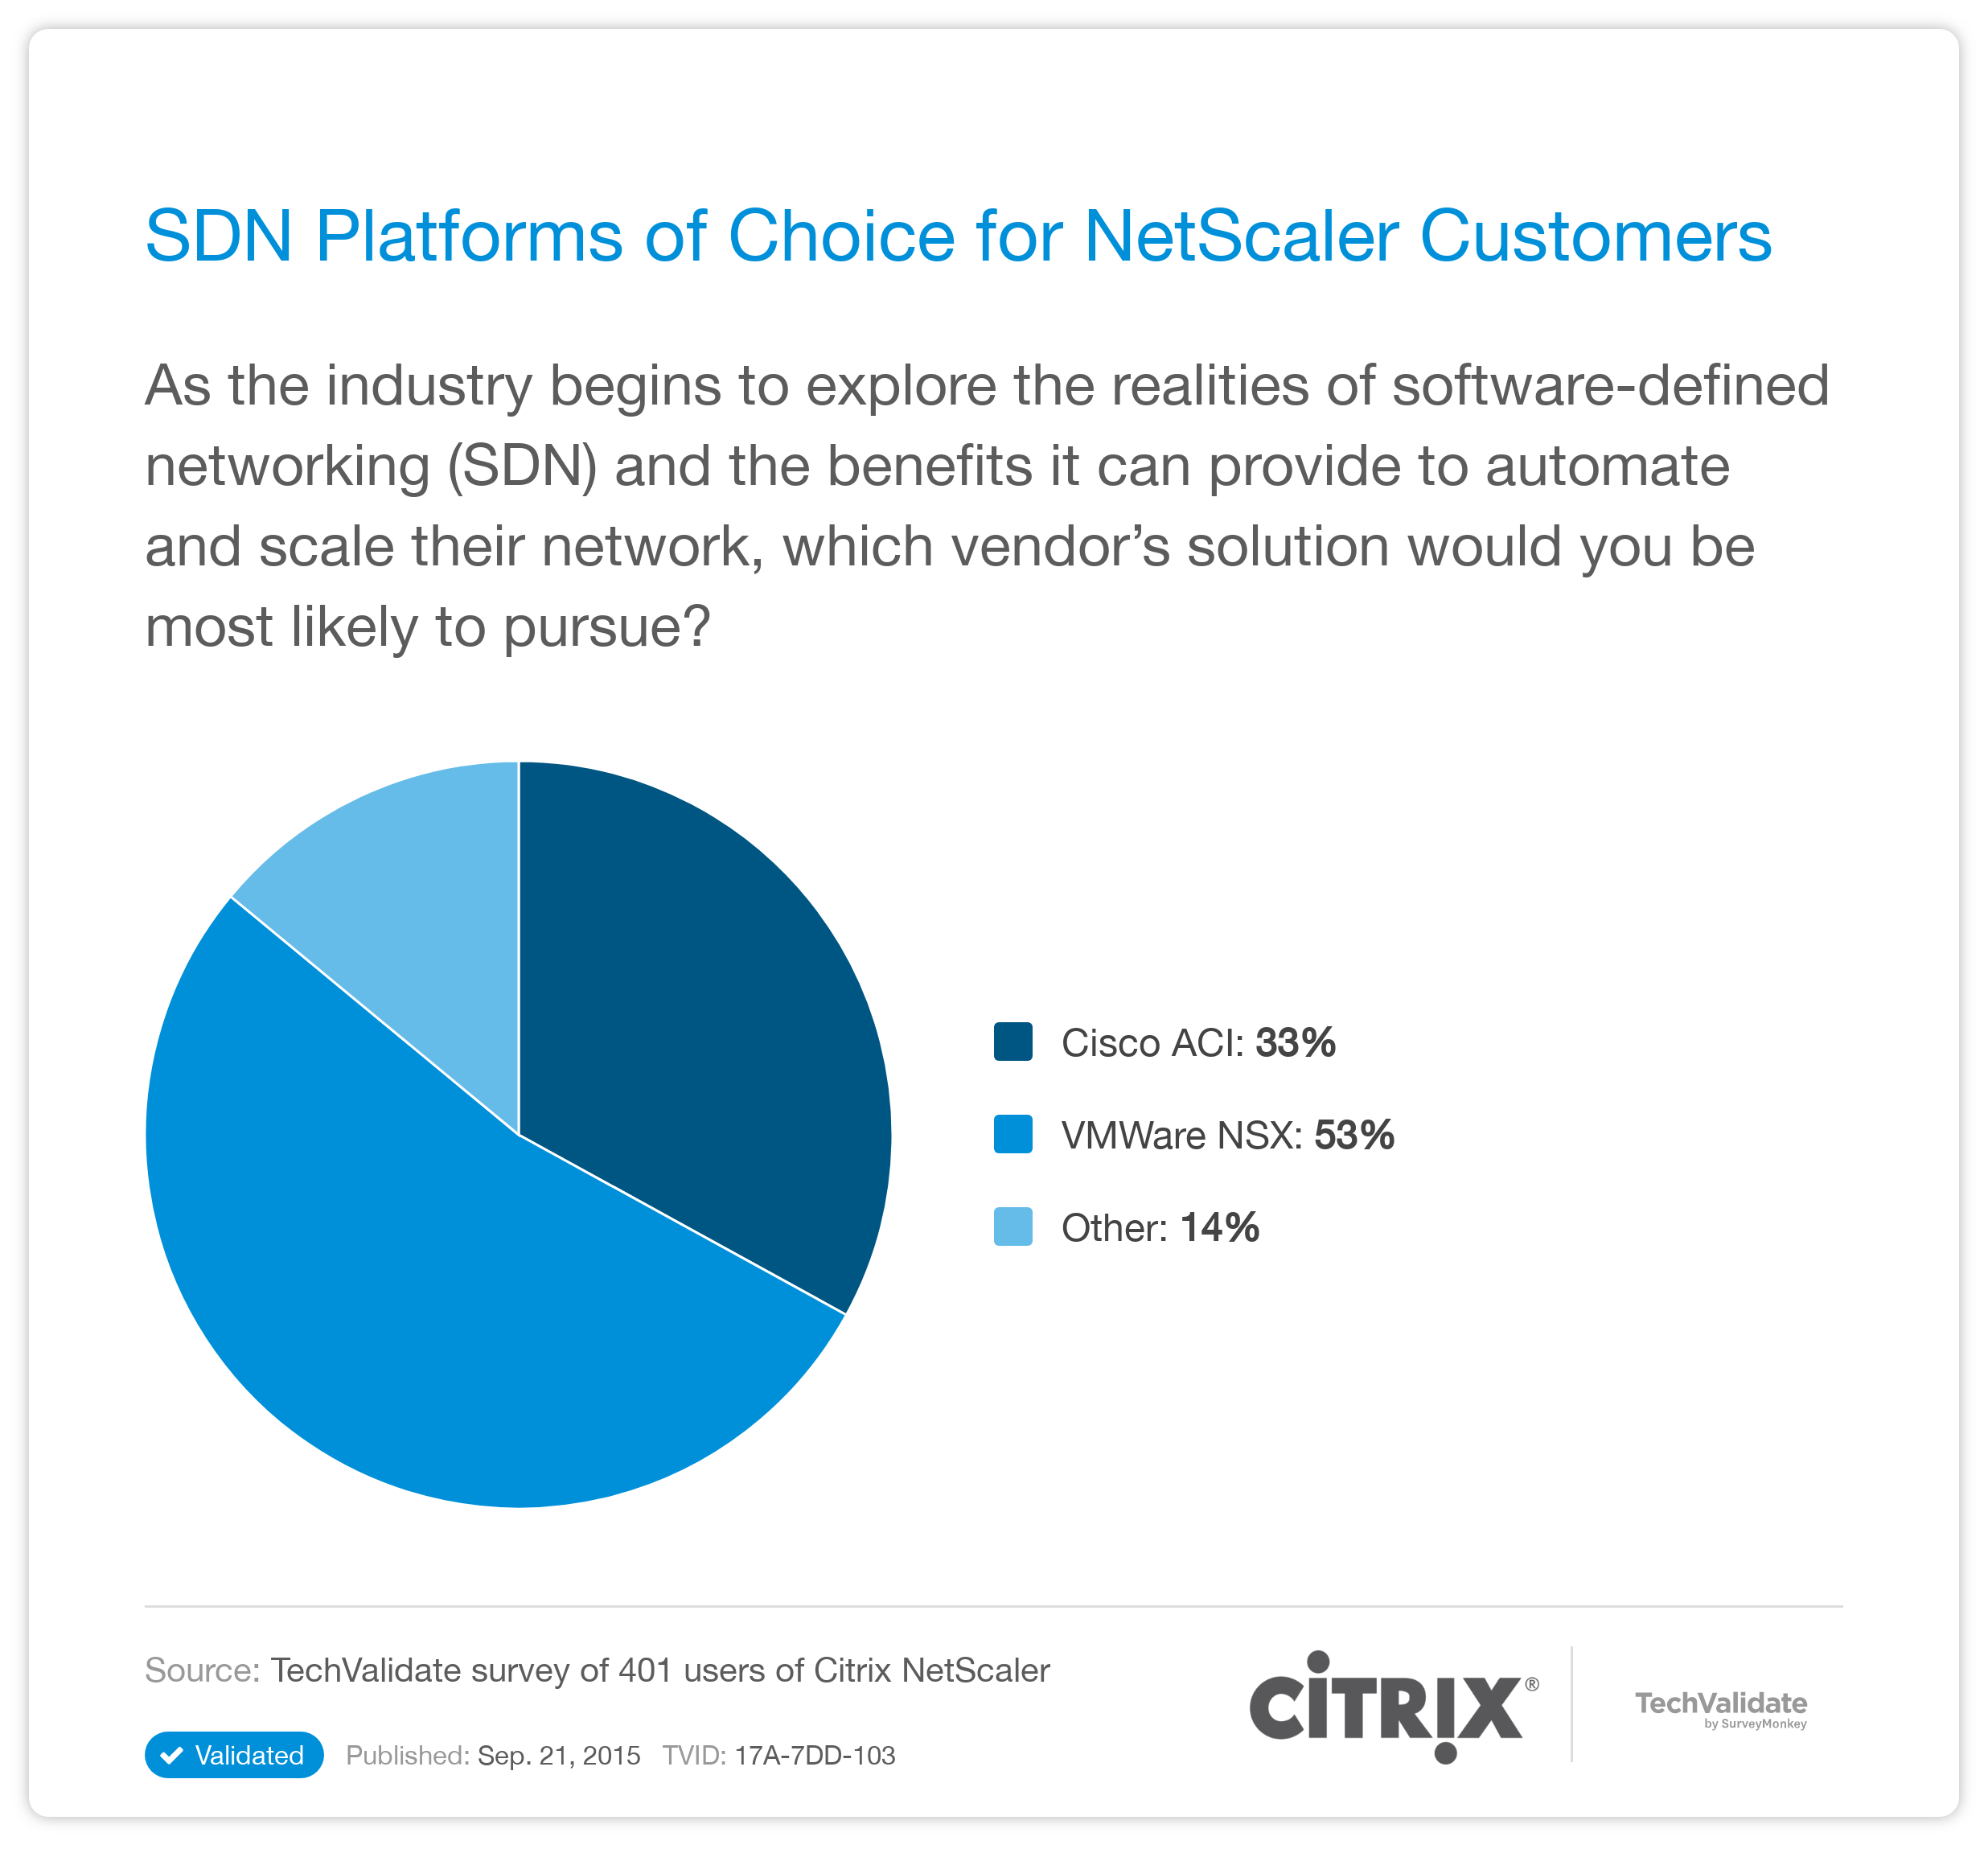 Citrix NetScaler Research Chart: SDN Platforms of Choice for